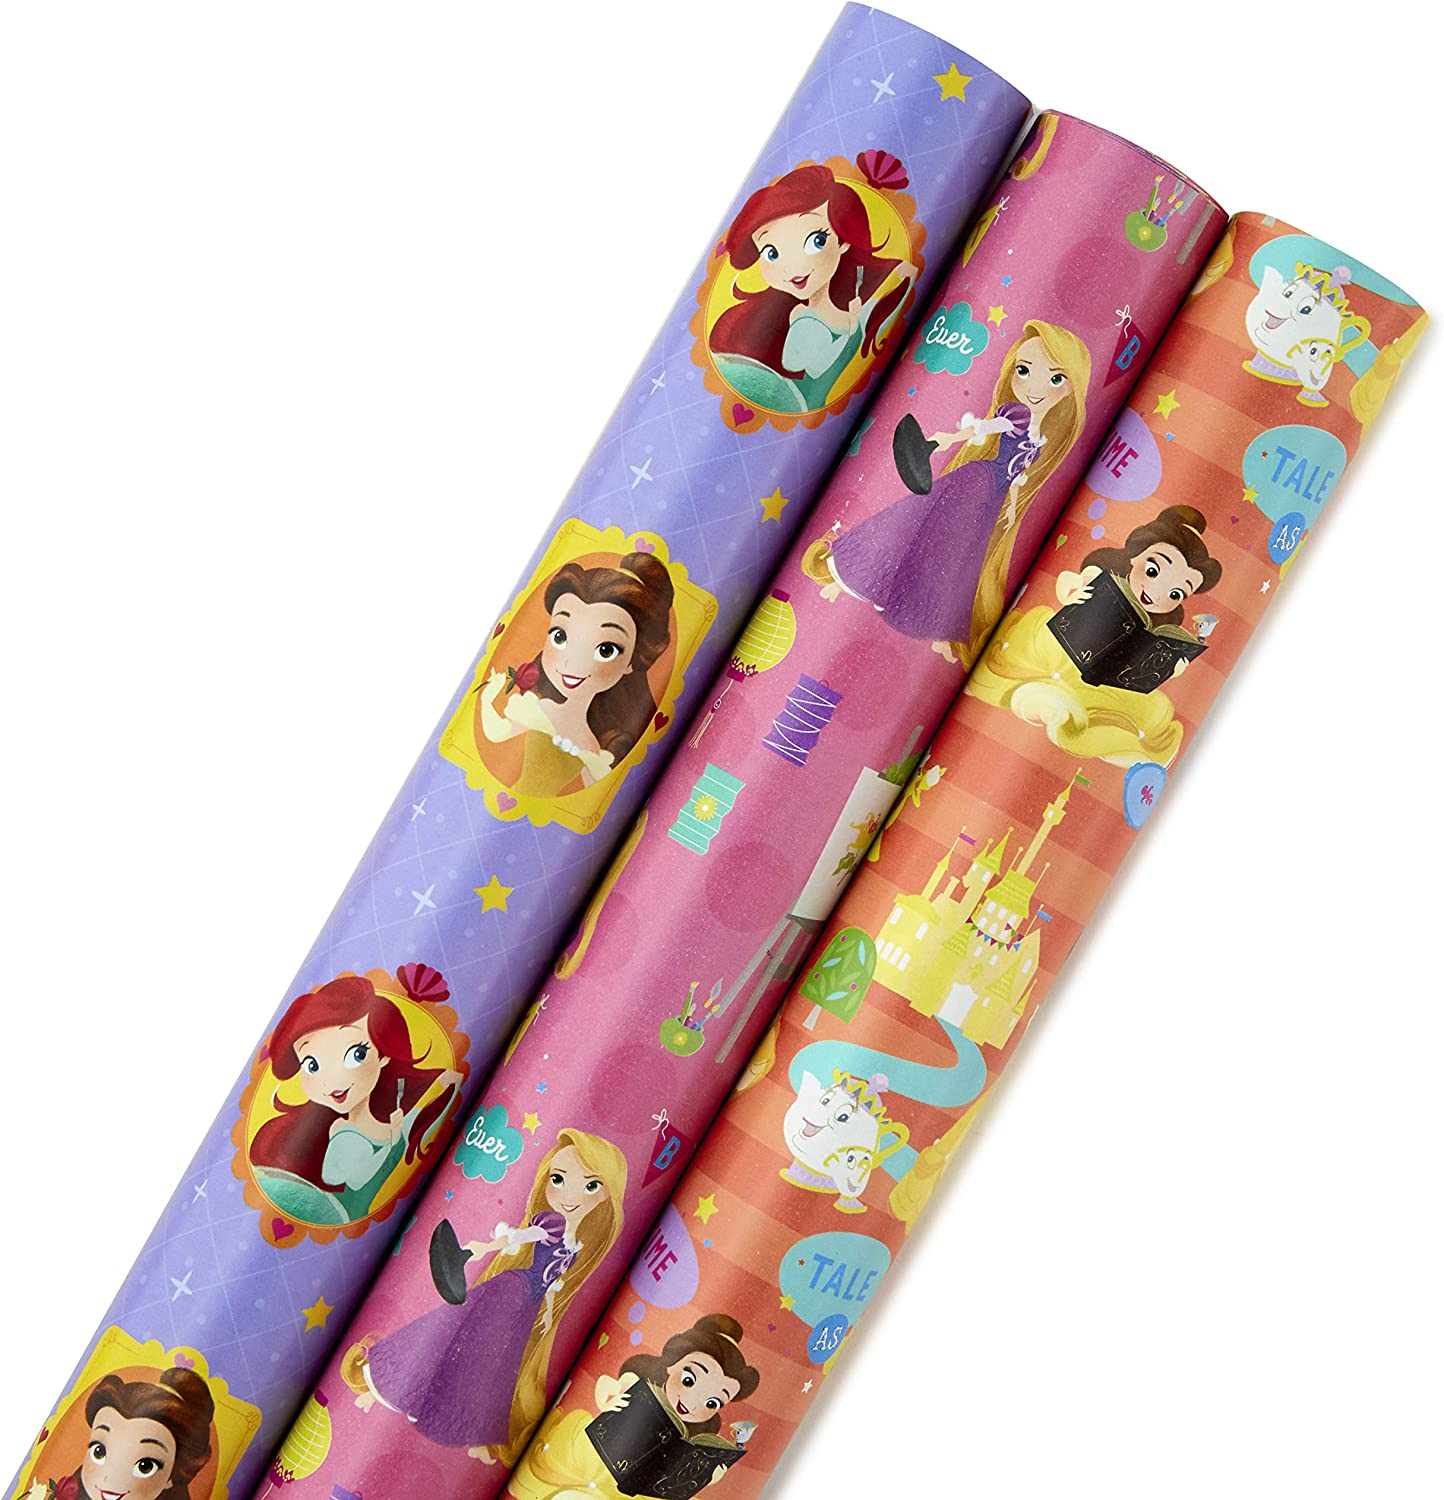 Hallmark Disney Princess Wrapping Paper with Cut Lines (Pack of 3, 105 sq. ft. ttl.) with Belle, Ariel, Cinderella, Rapunzel and More for Birthdays, Christmas or Any Occasion: Kitchen & Dining